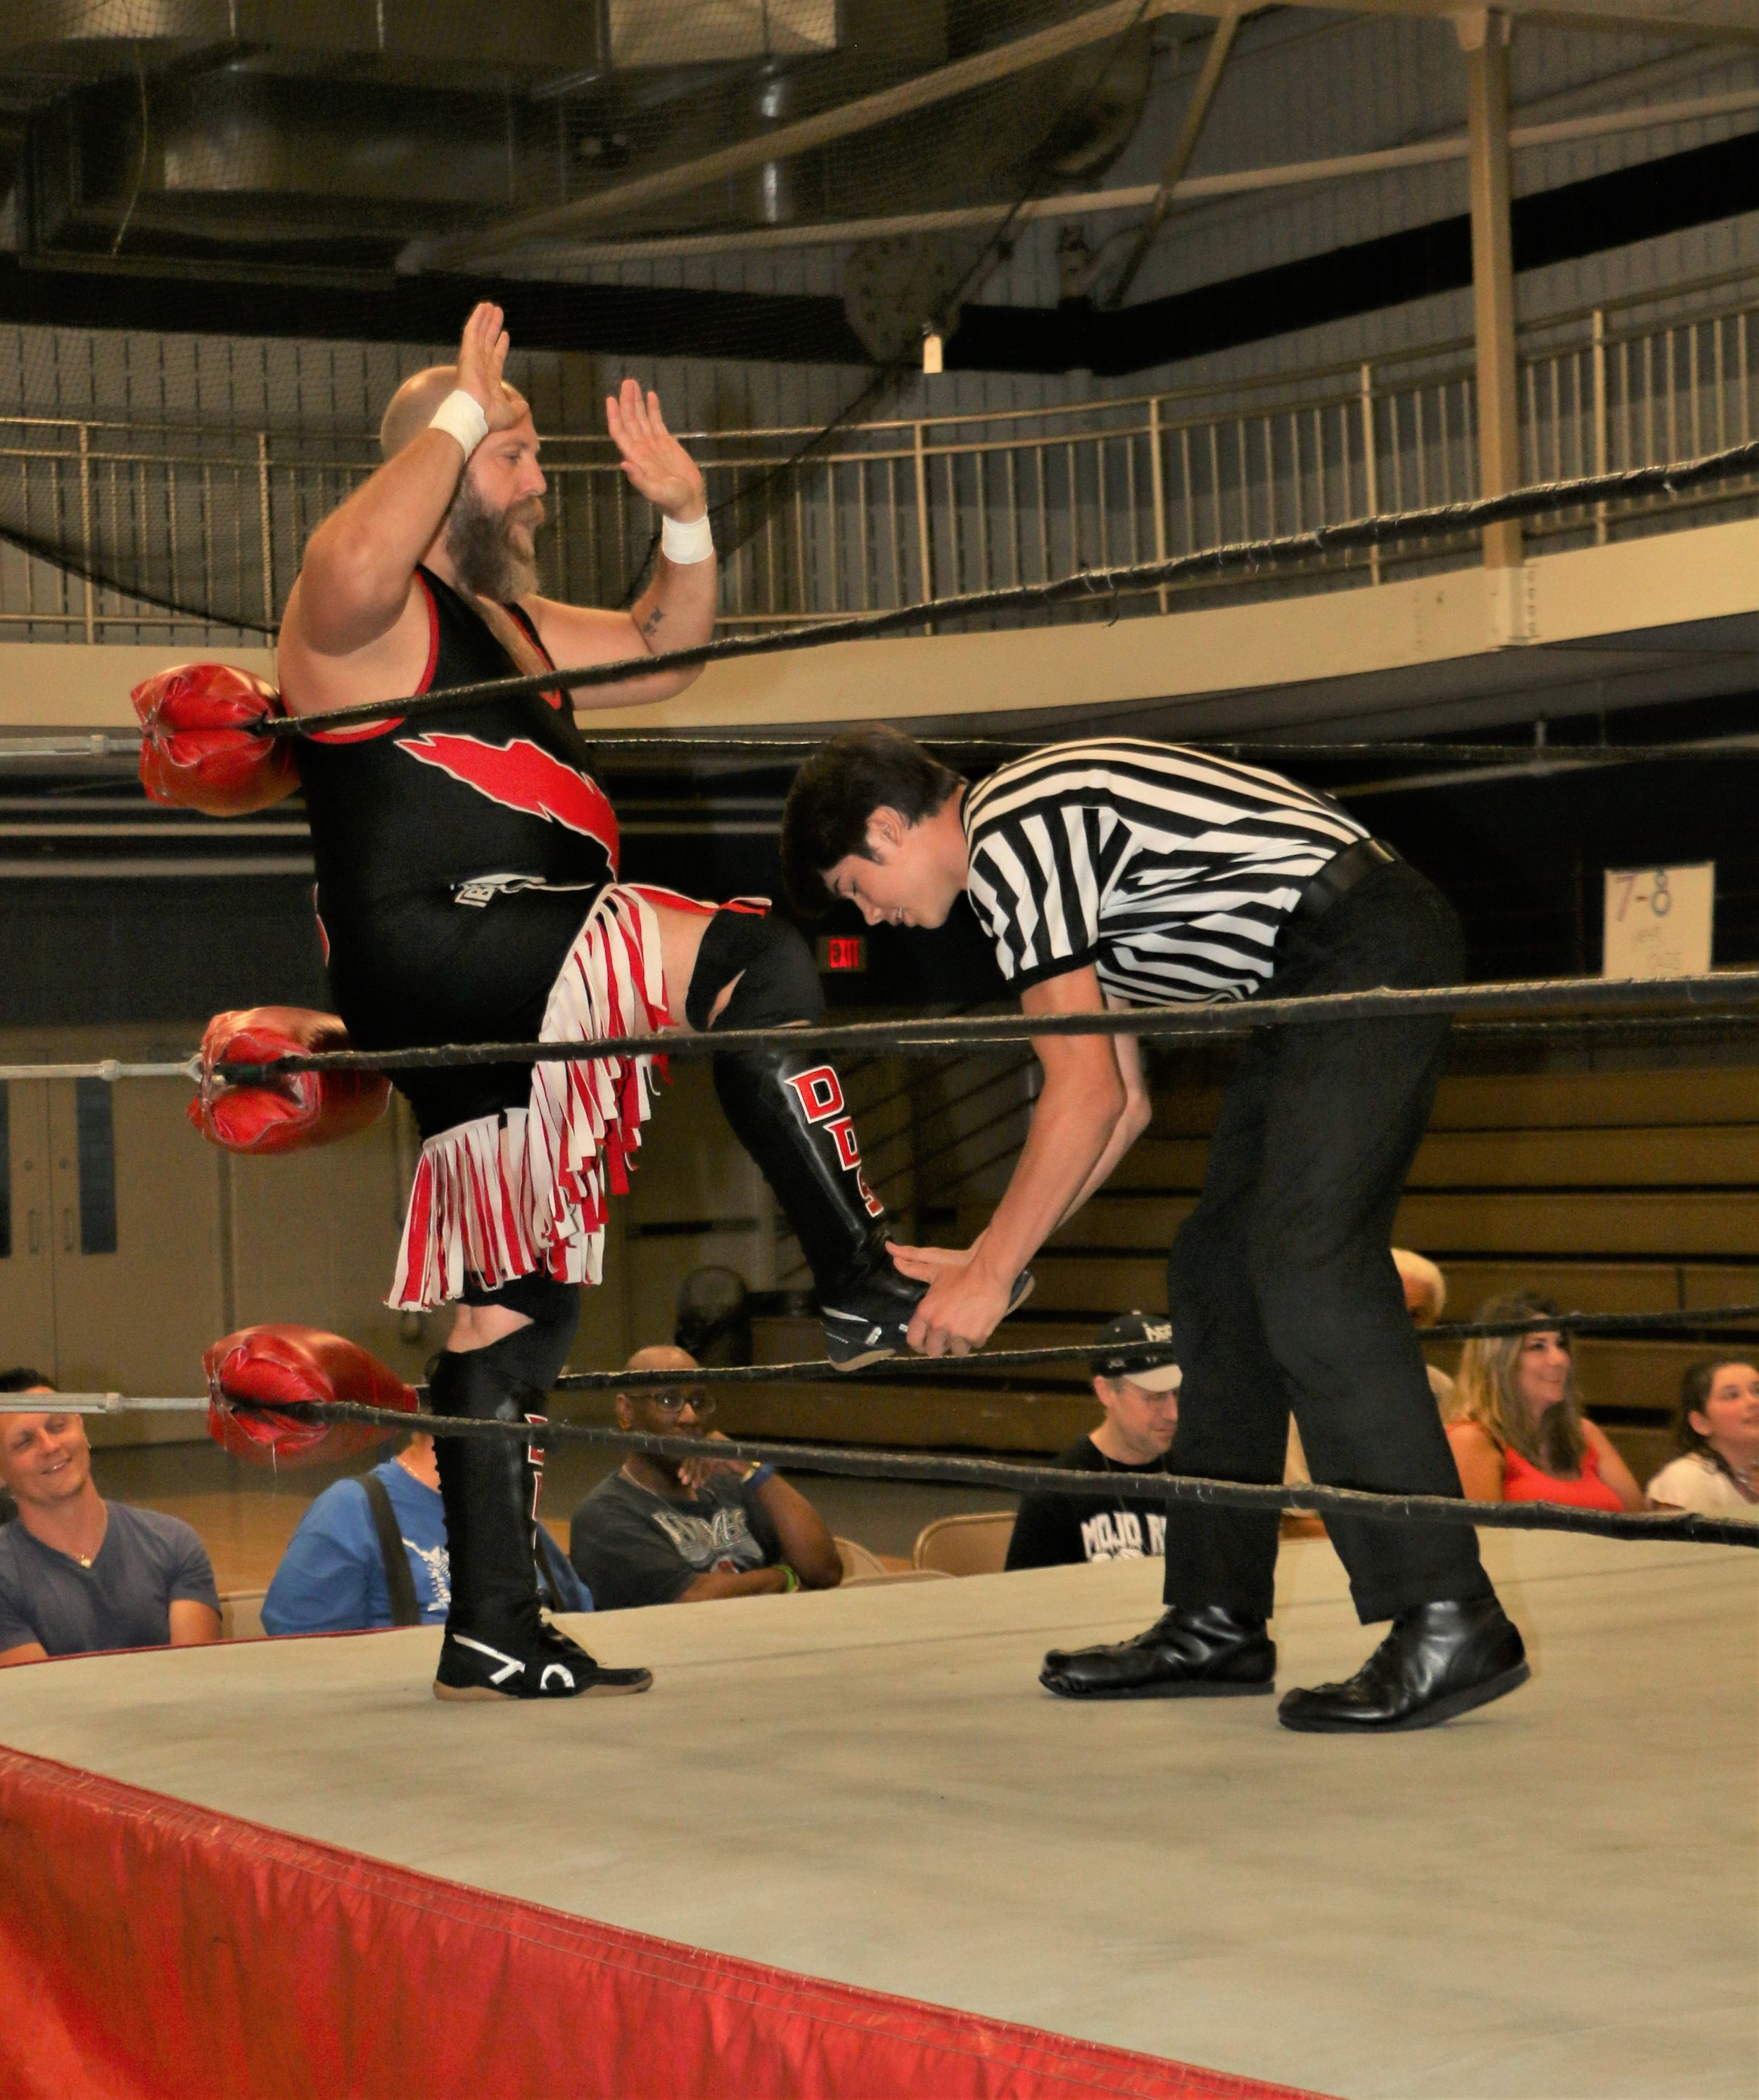 The referee checks DDS before his match against Alex Riley.